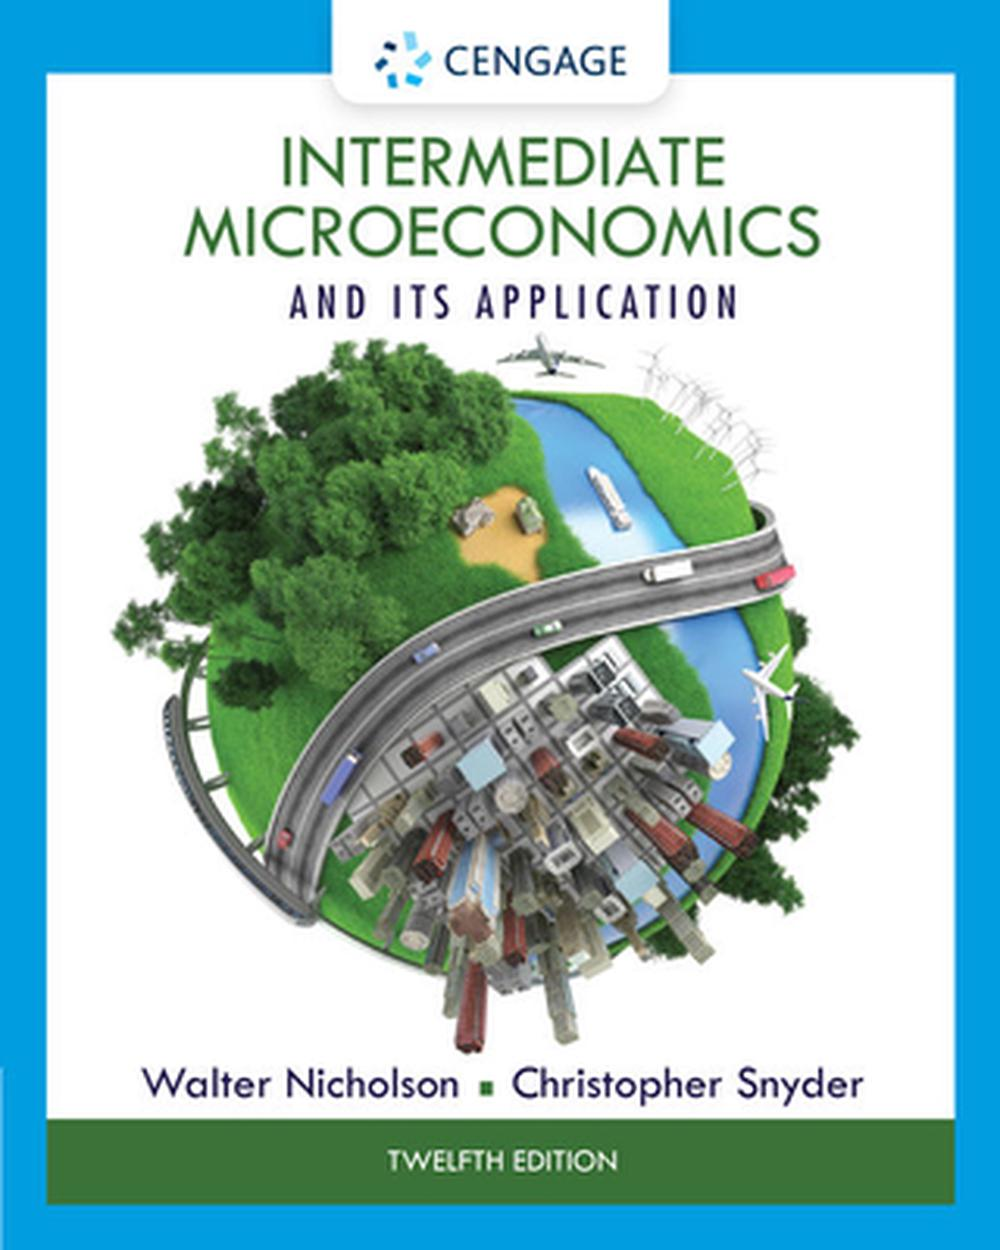 Intermediate Microeconomics and its Application, 12th Edition